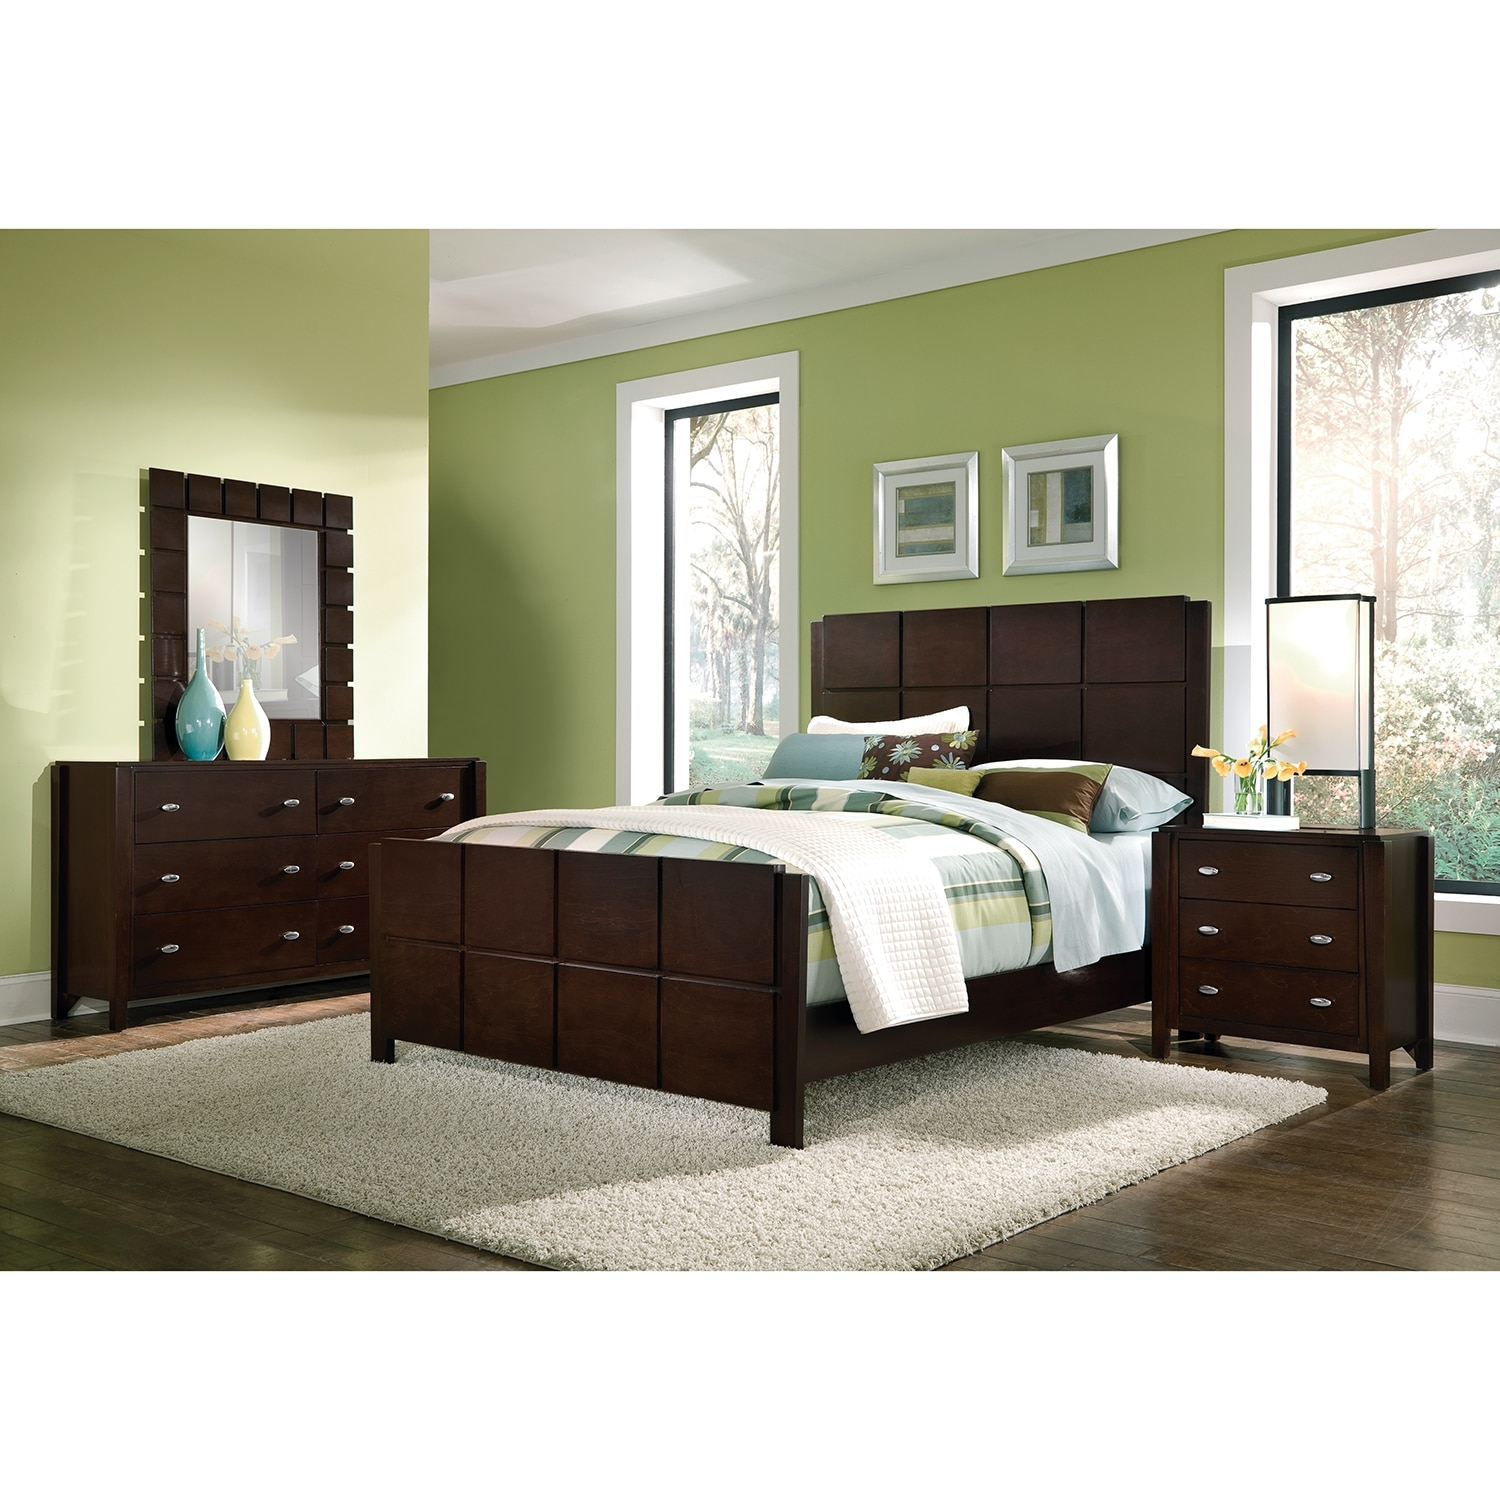 Mosaic 6 piece queen bedroom set dark brown value city for Bedroom furniture set